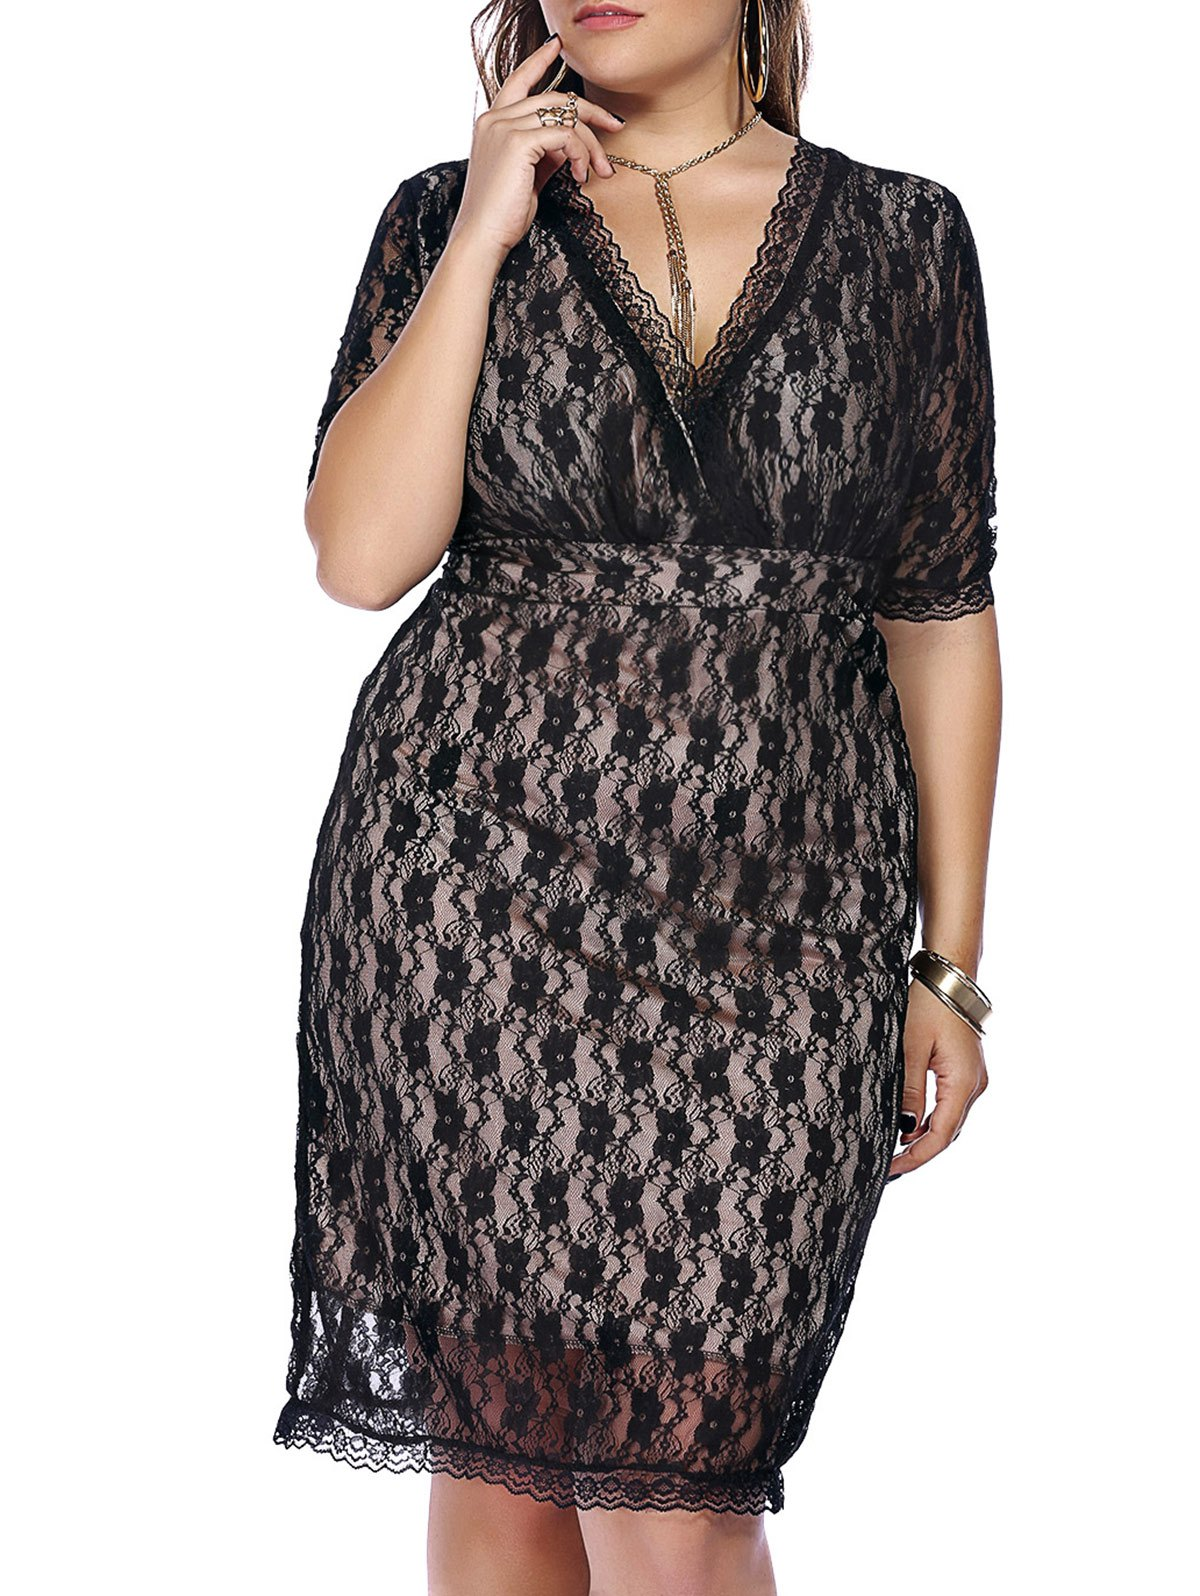 Graceful Women's Plus Size Plunging Neck Half Sleeve Lace Dress